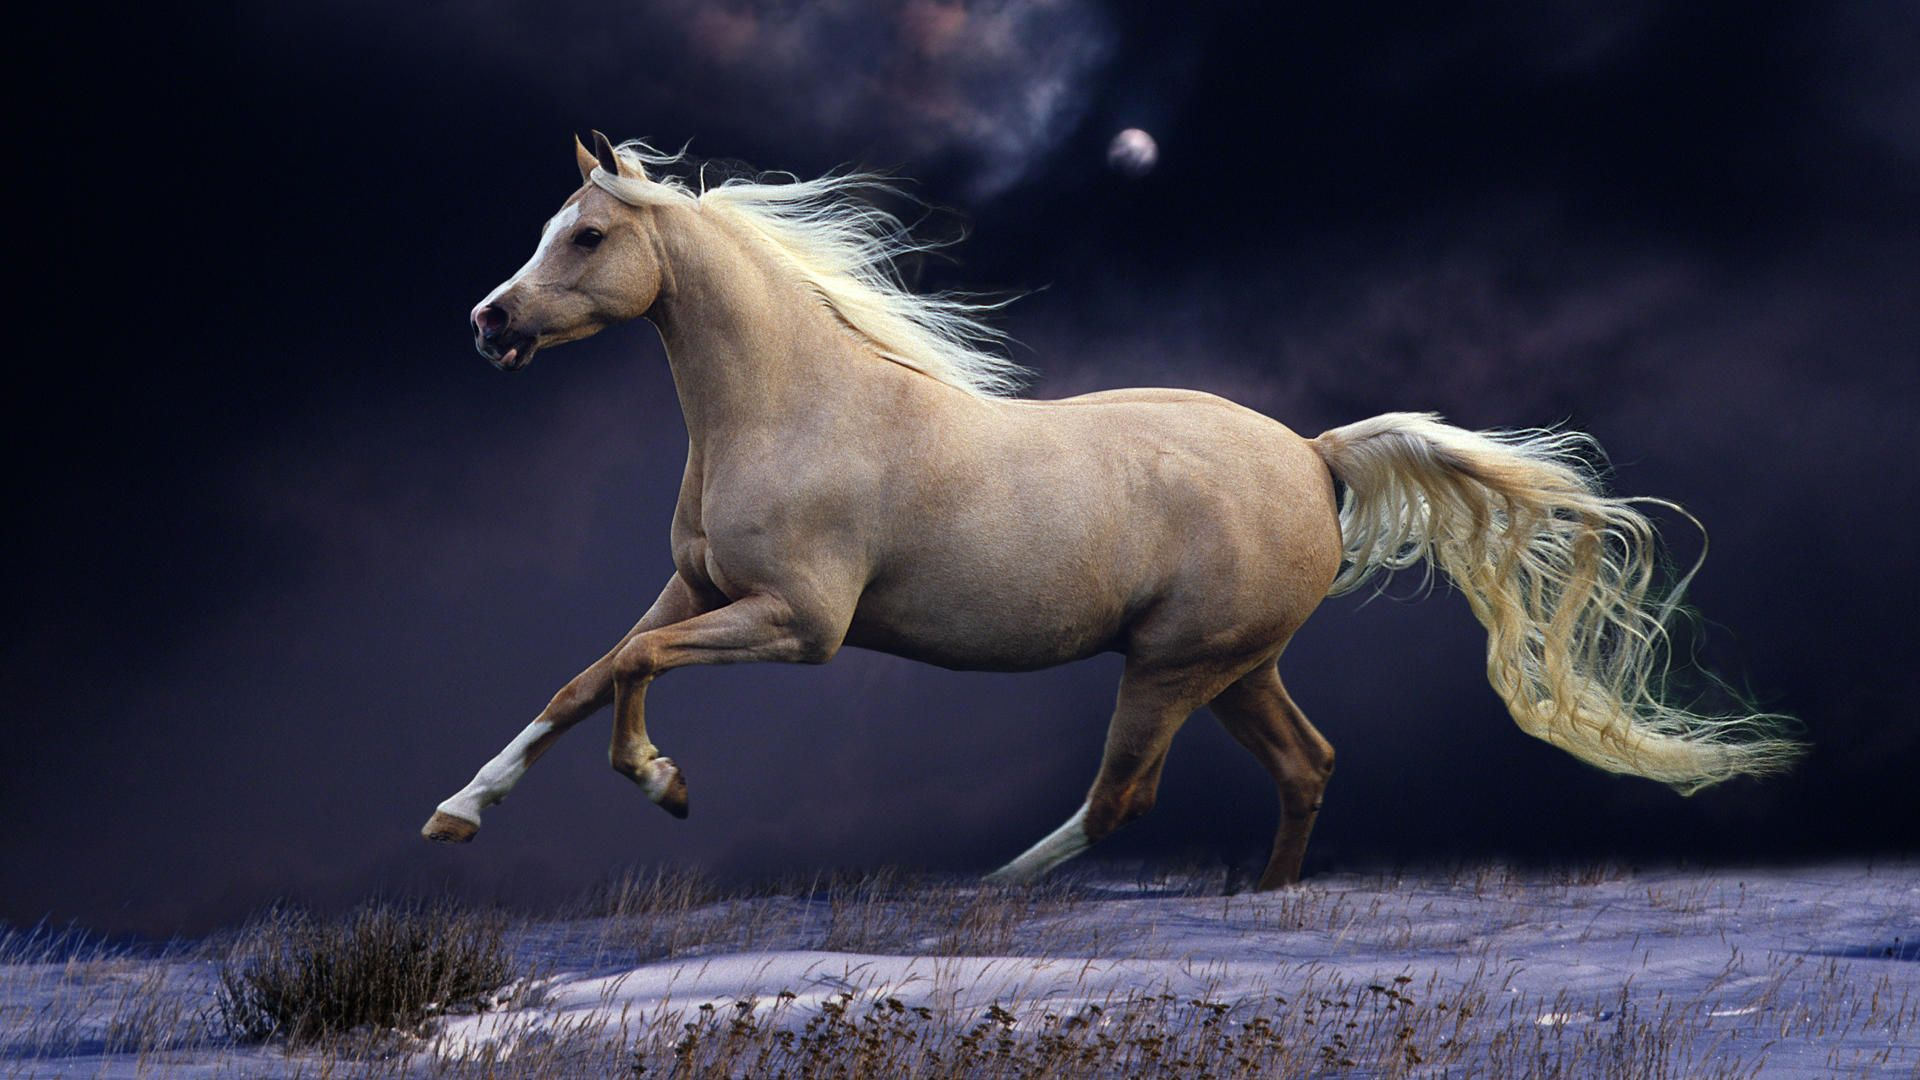 free horses wallpapers